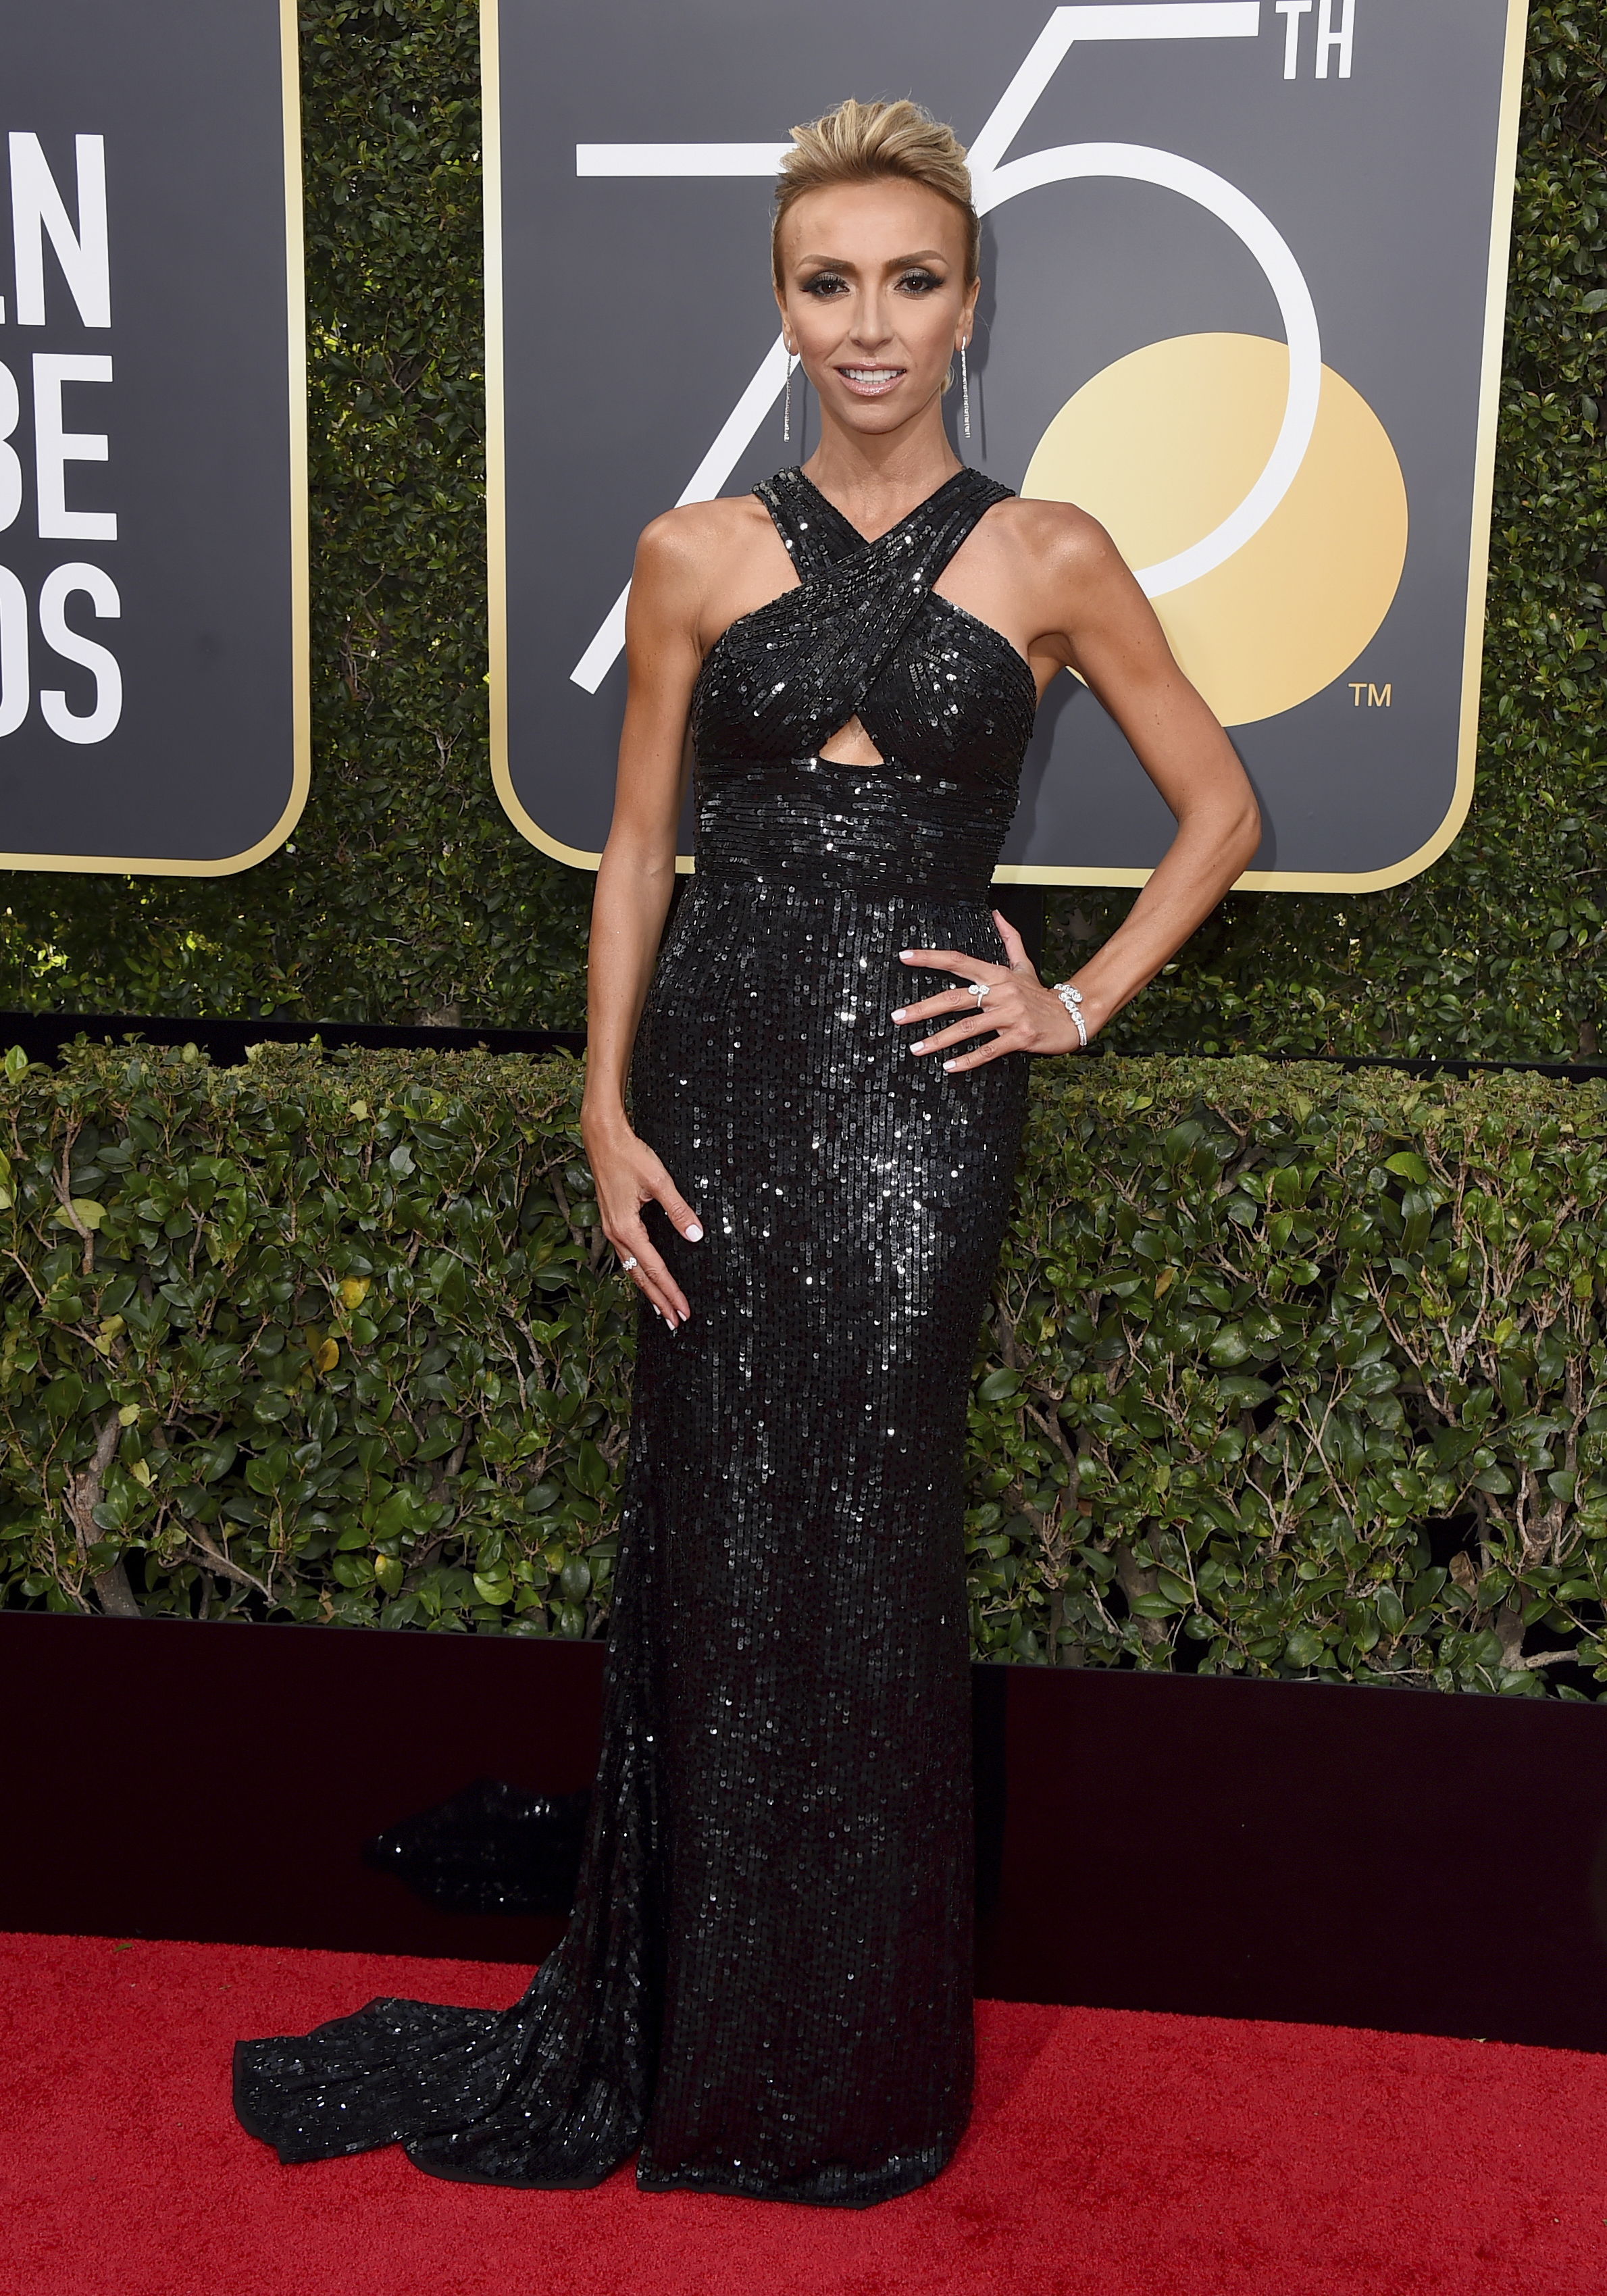 <div class='meta'><div class='origin-logo' data-origin='AP'></div><span class='caption-text' data-credit='Jordan Strauss/Invision/AP'>Giuliana Rancic arrives at the 75th annual Golden Globe Awards at the Beverly Hilton Hotel on Sunday, Jan. 7, 2018, in Beverly Hills, Calif.</span></div>